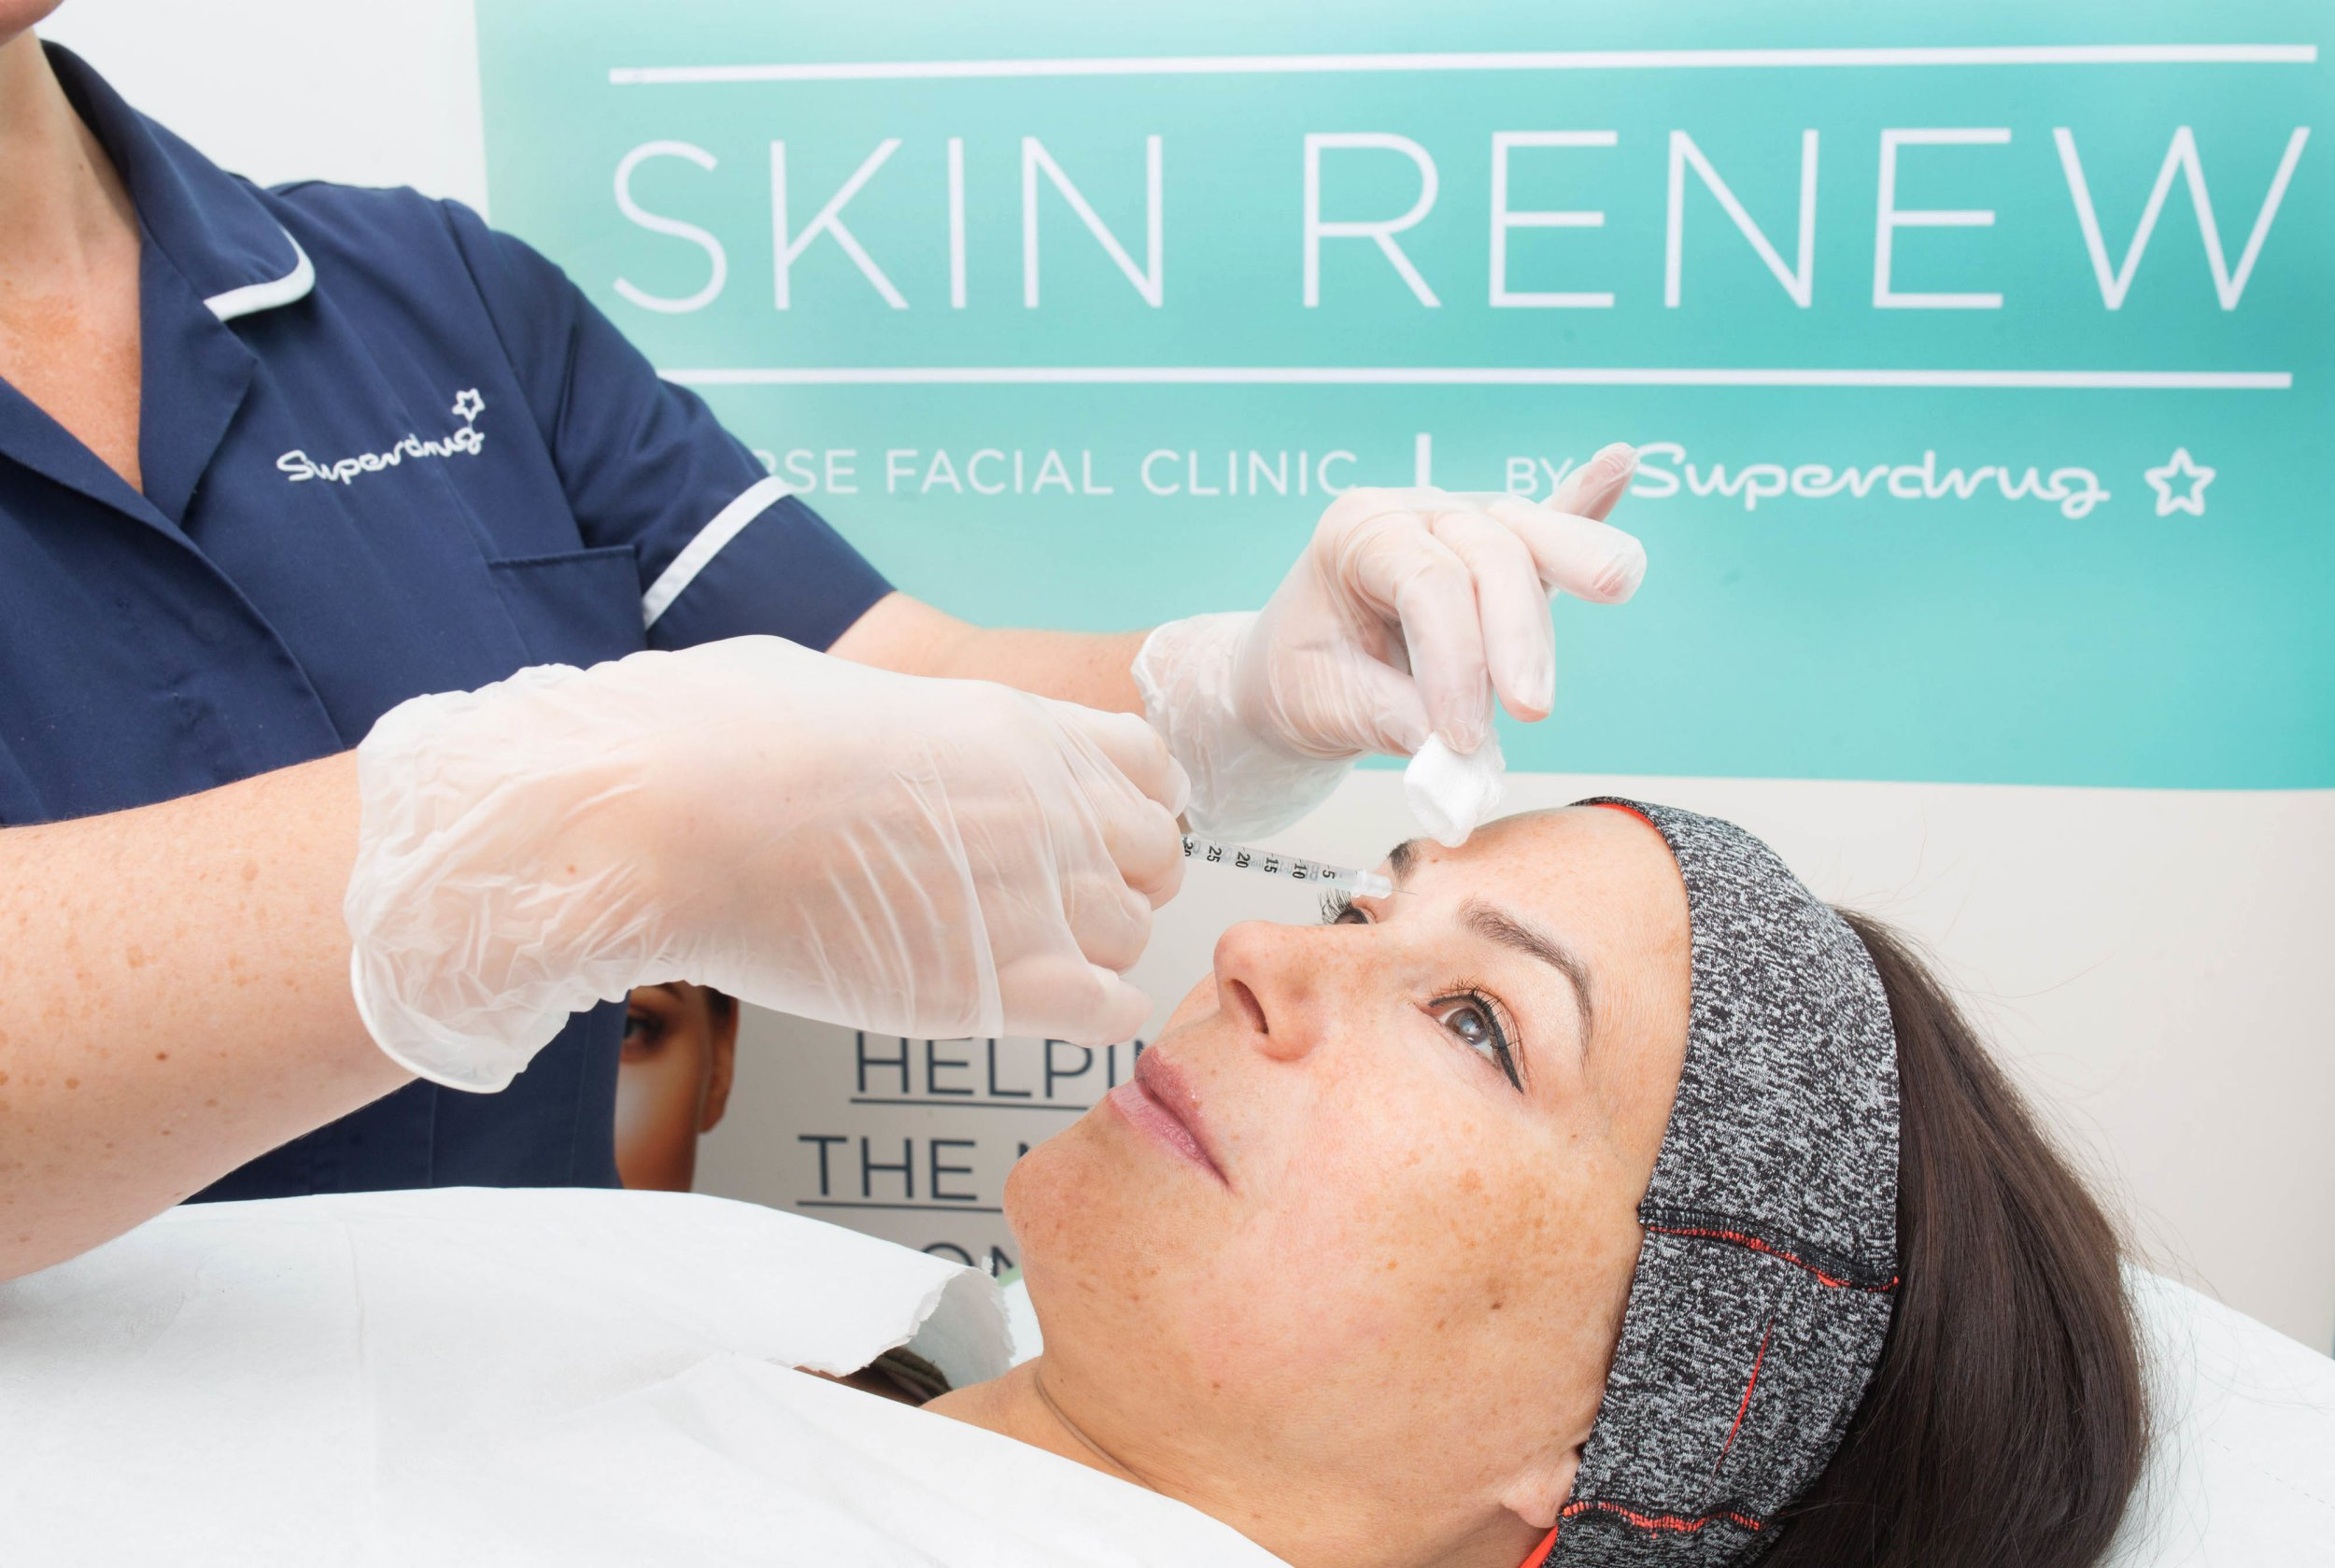 EDITORIAL USE ONLY Lisa from London receives a treatment following a consultation with Superdrug nurse Rosie, as the high street retailer launches its Skin Renew Service, which will include anti-wrinkle and skin rejuvenation aesthetic treatments such as BOTOX and Juvederm dermal fillers. The service, which will be available to customers aged 25 and over, will start atʣ99.